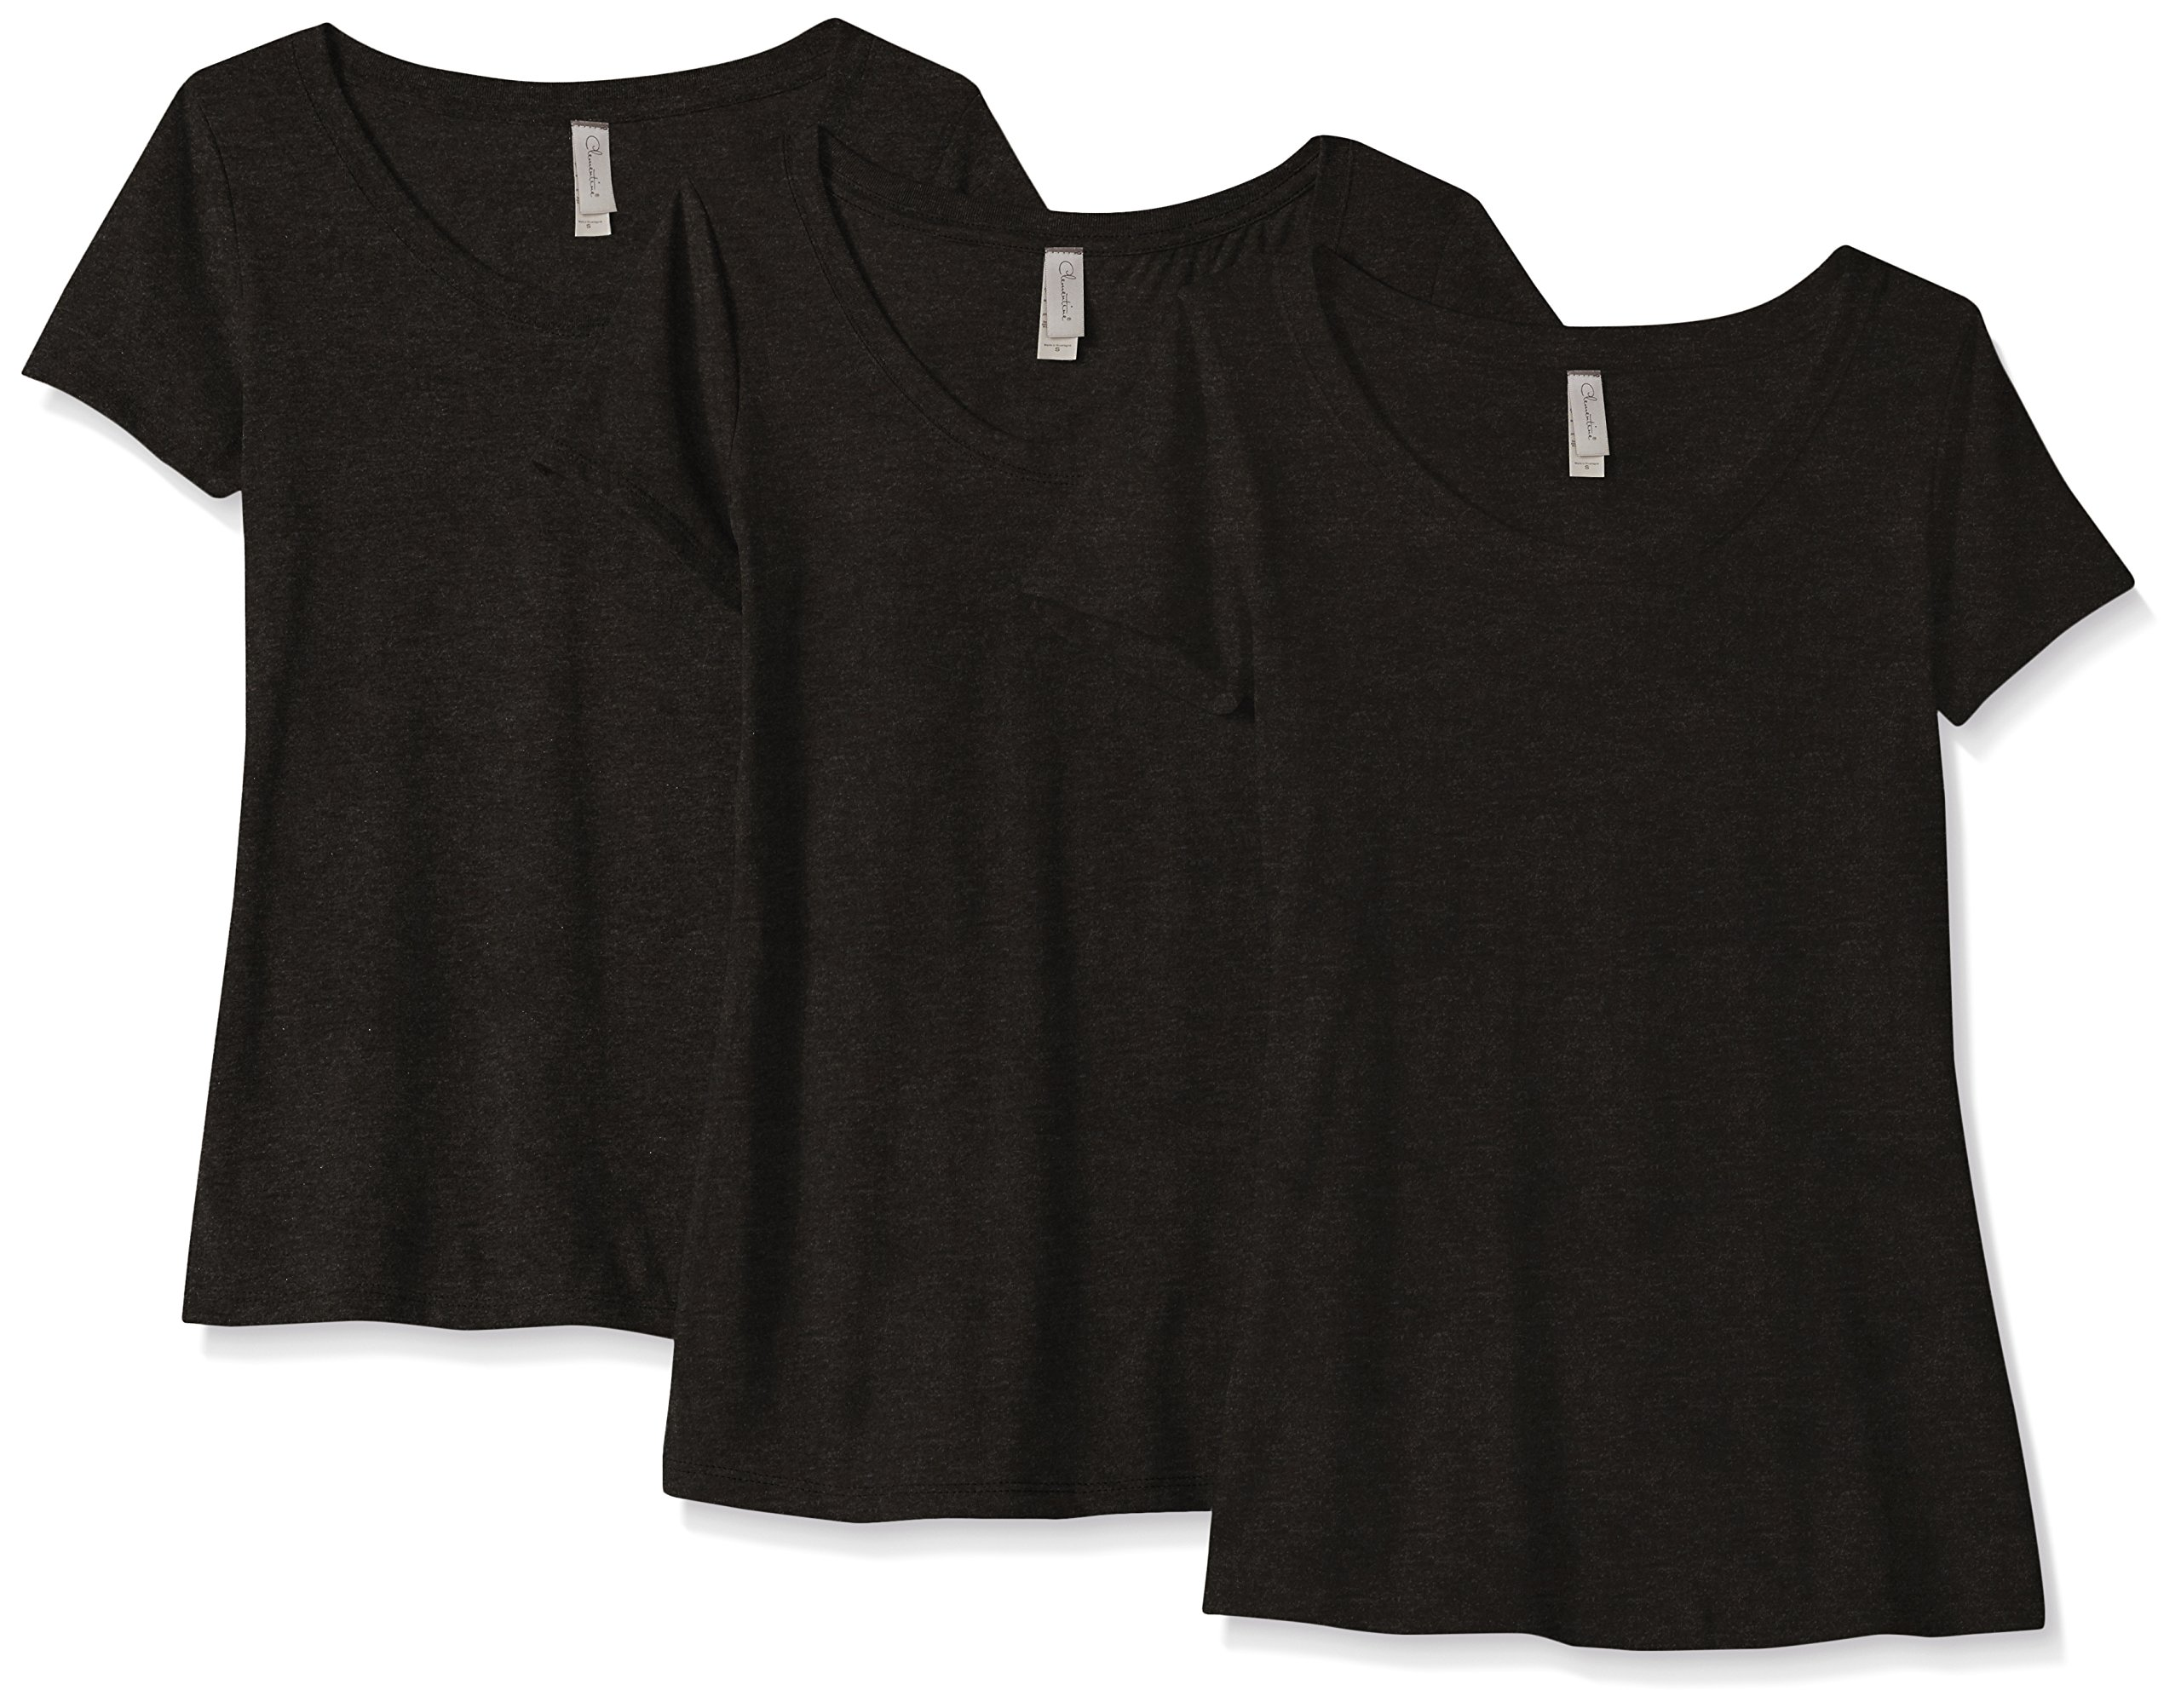 Clementine Apparel 3 Pack Short Sleeve T Shirts Tag Free Scoop Neck Triblend Stretch Undershirt Tees (6730)